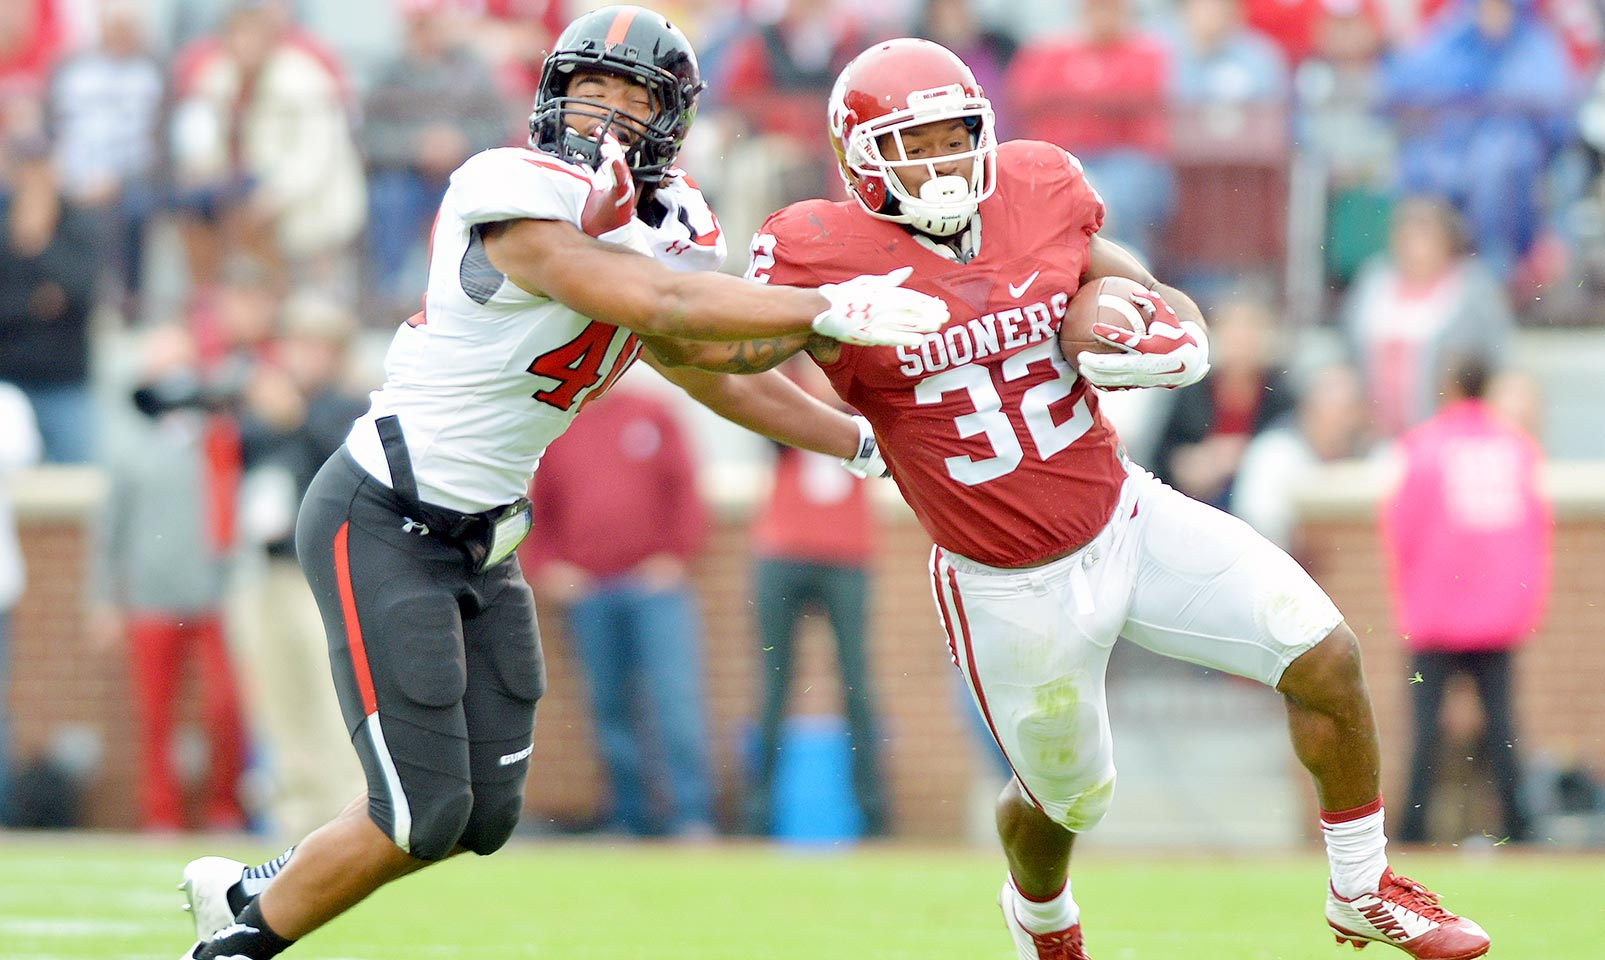 Oklahoma 63, Texas Tech 27: The Sooners' ground game ran all over the Red Raiders for 405 yards rushing. Samaje Perine led the charge with 201 yards and four scores while Joe Mixon added 154 yards and two more touchdowns. Oklahoma's defense aided the cause with four turnovers.